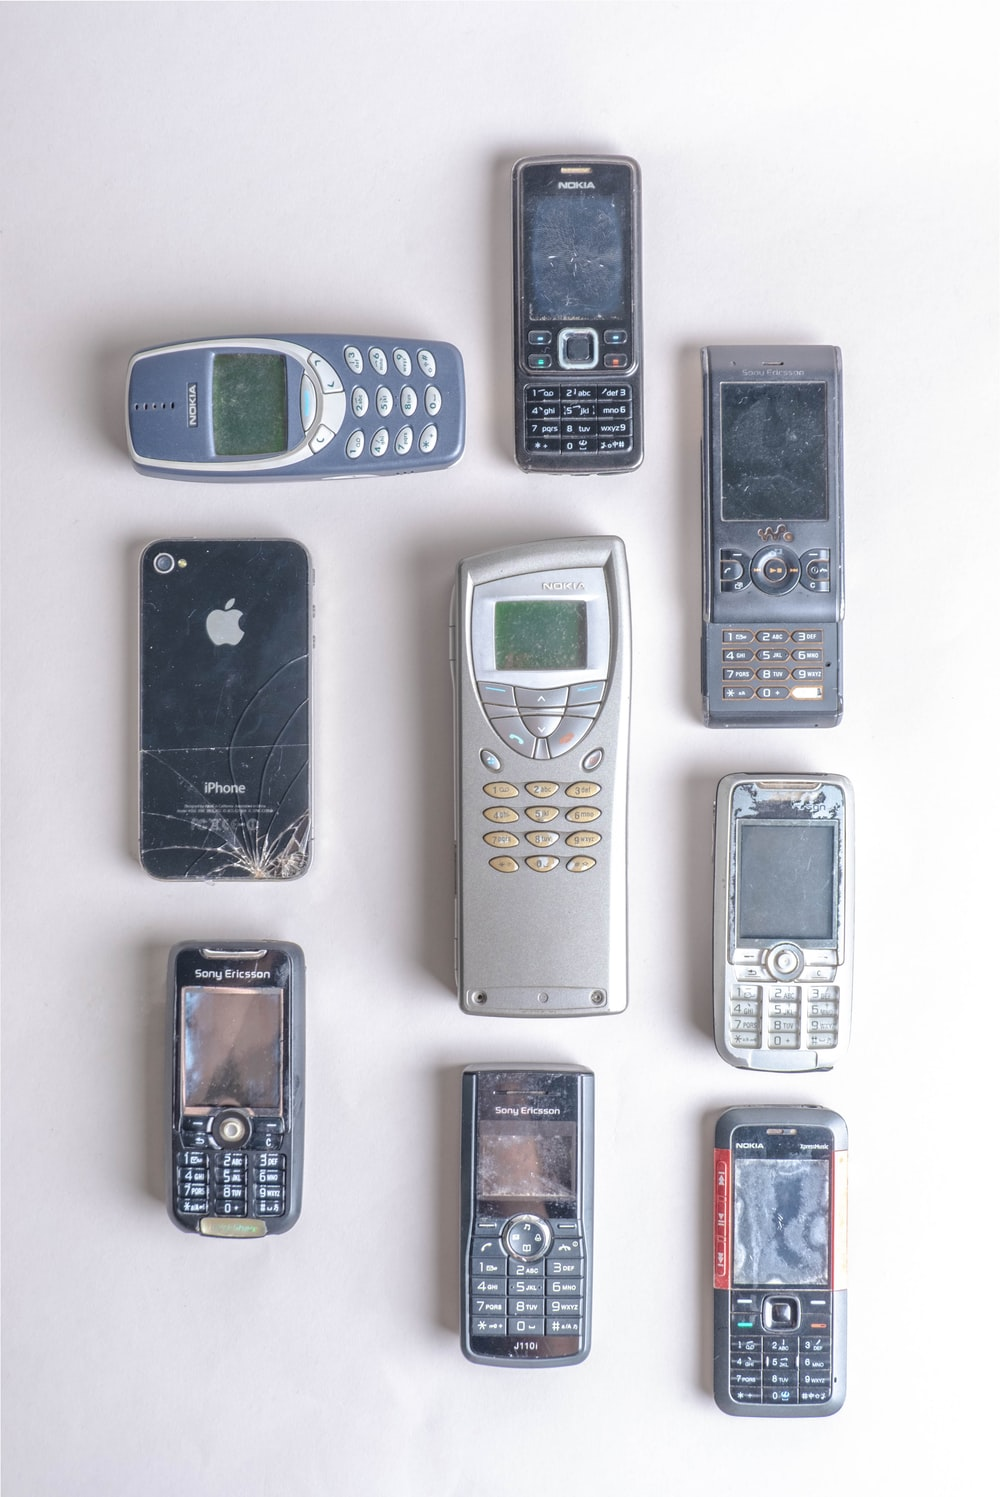 assorted color candybar phones on white surface